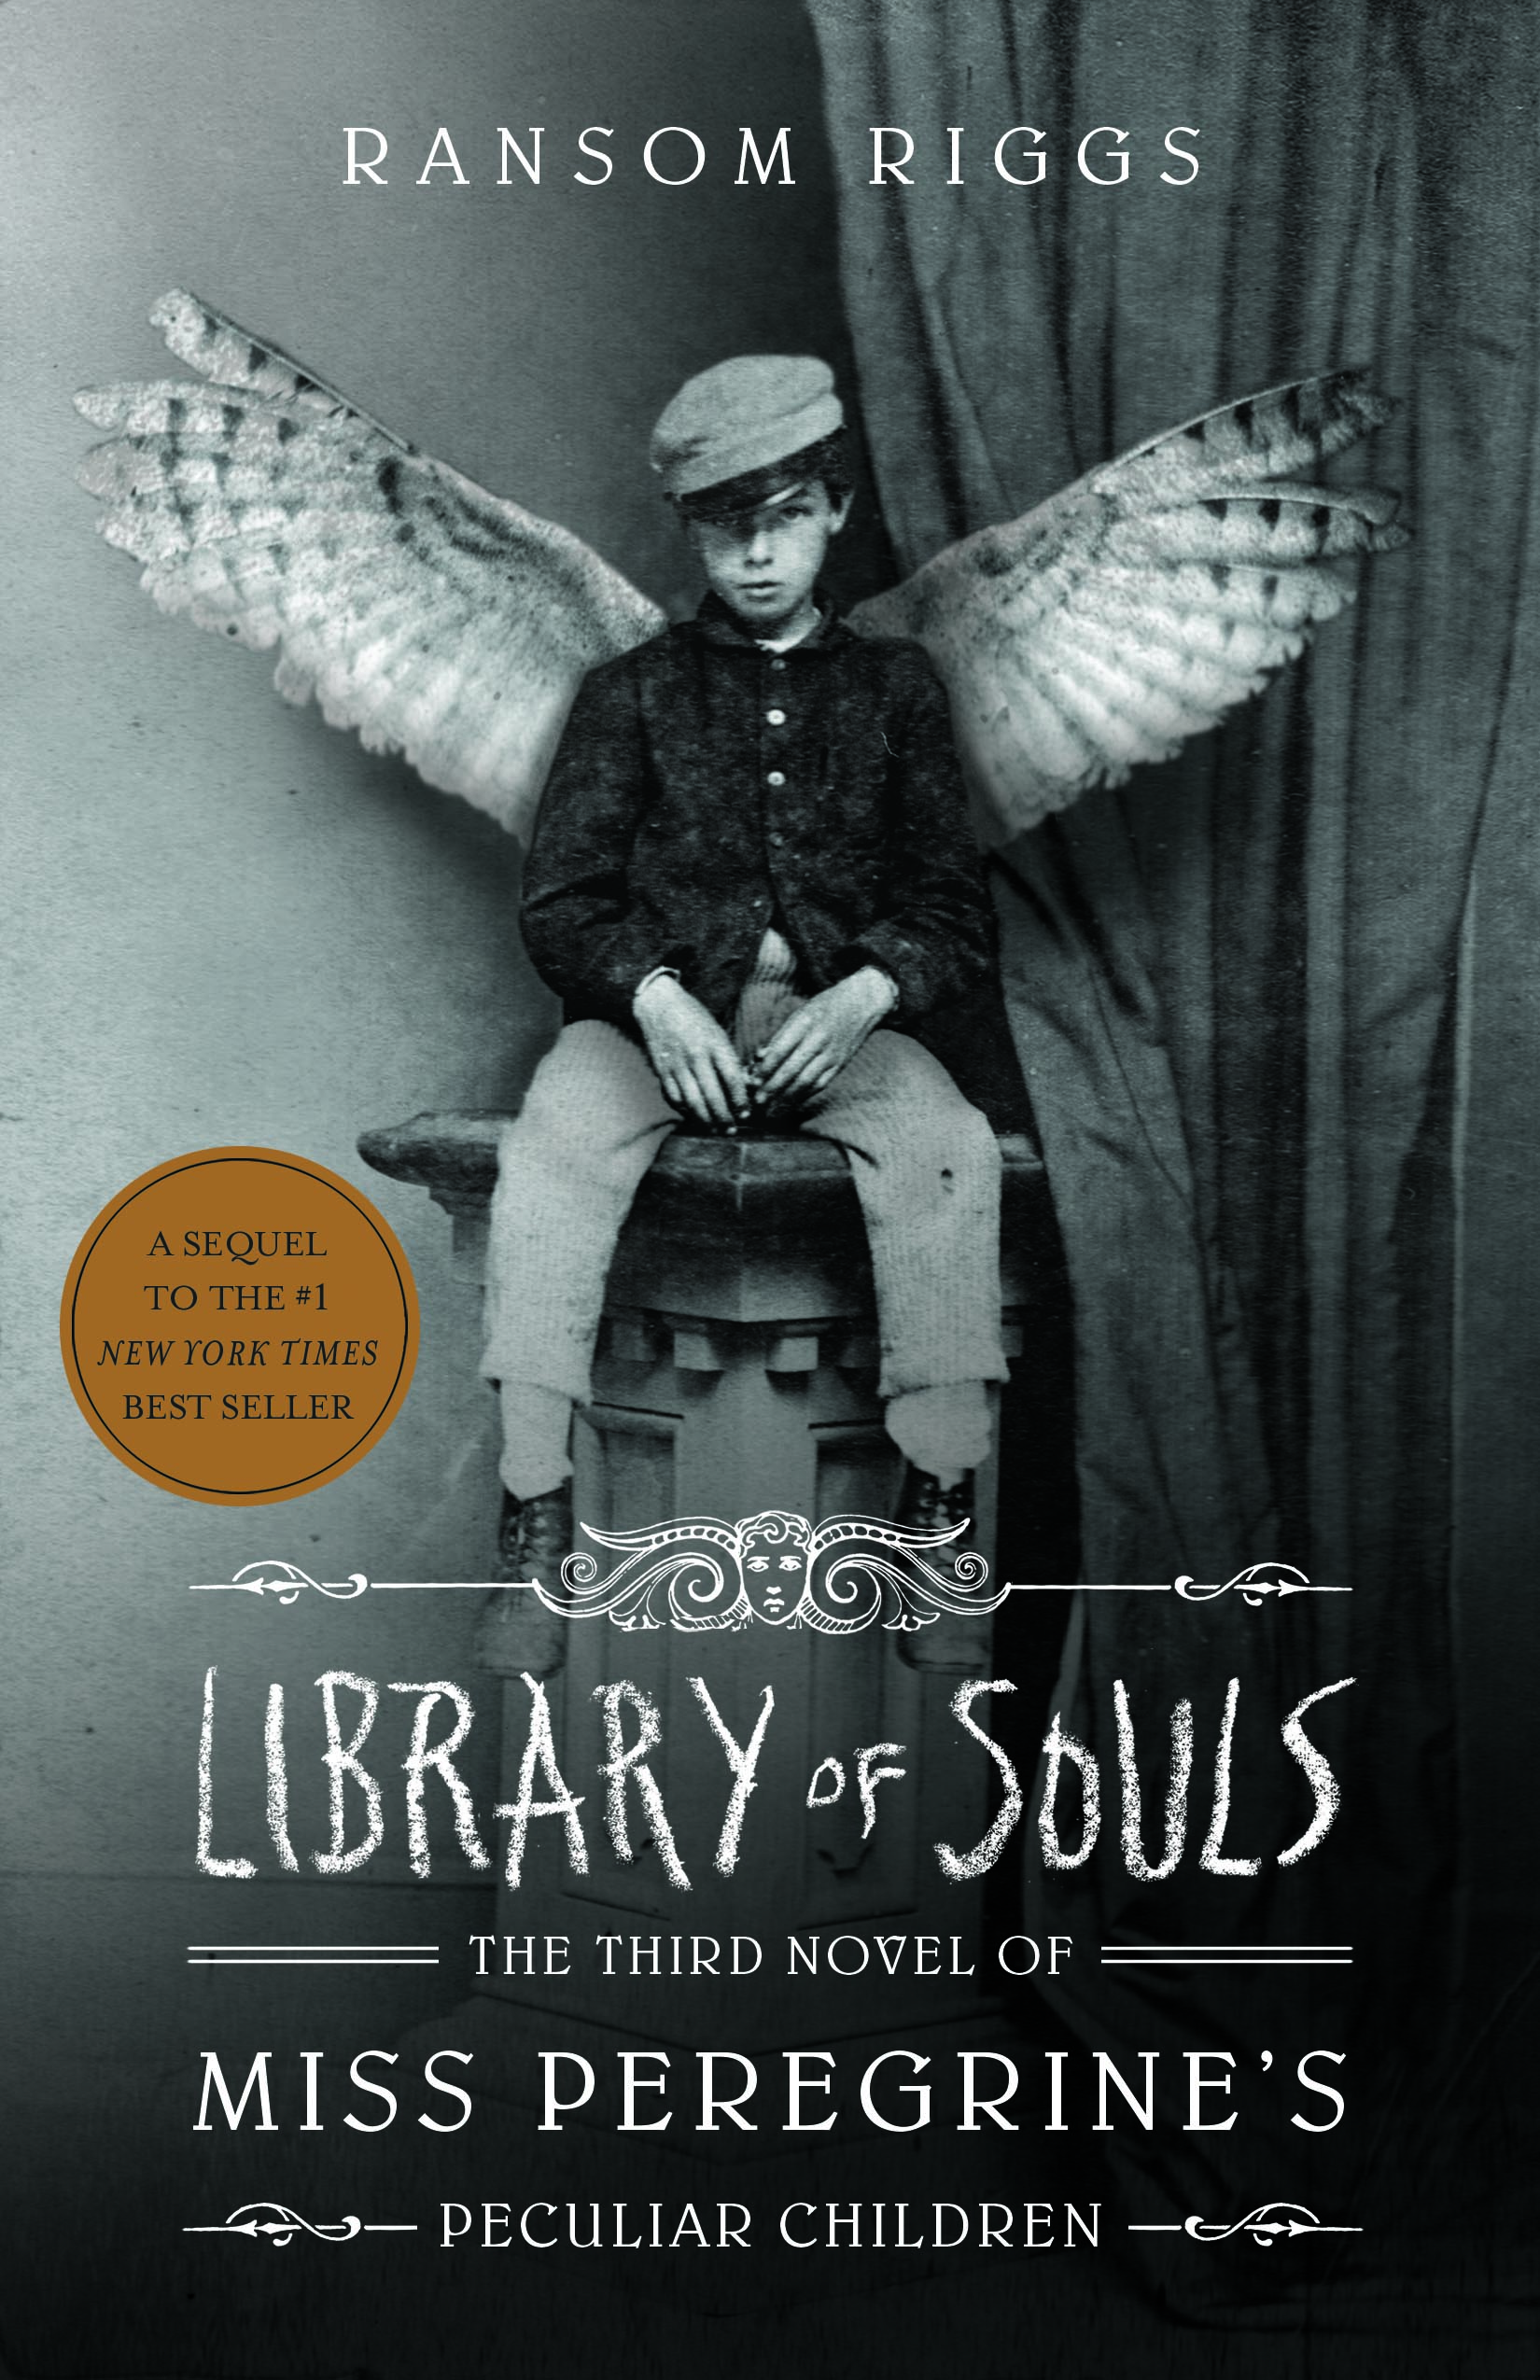 Library of Souls, Review by Emma Suschelnitsky Book Cover